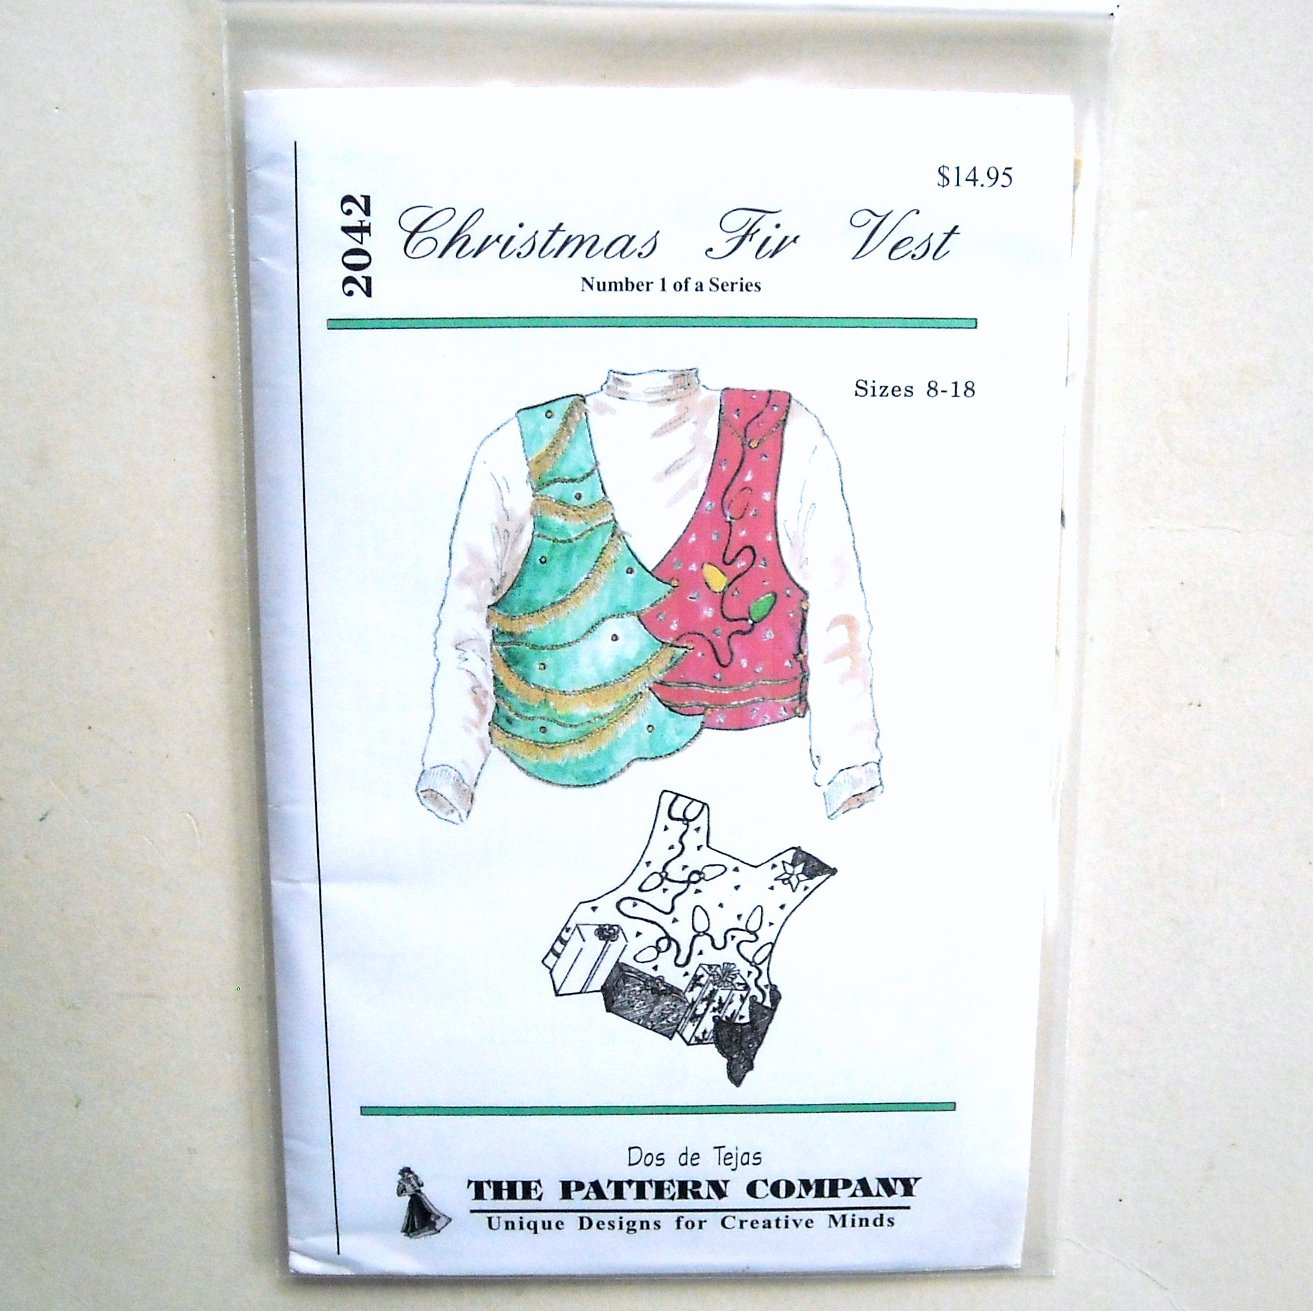 Misses Christmas Fir Vest Dos De Tejas Sewing Pattern 2042